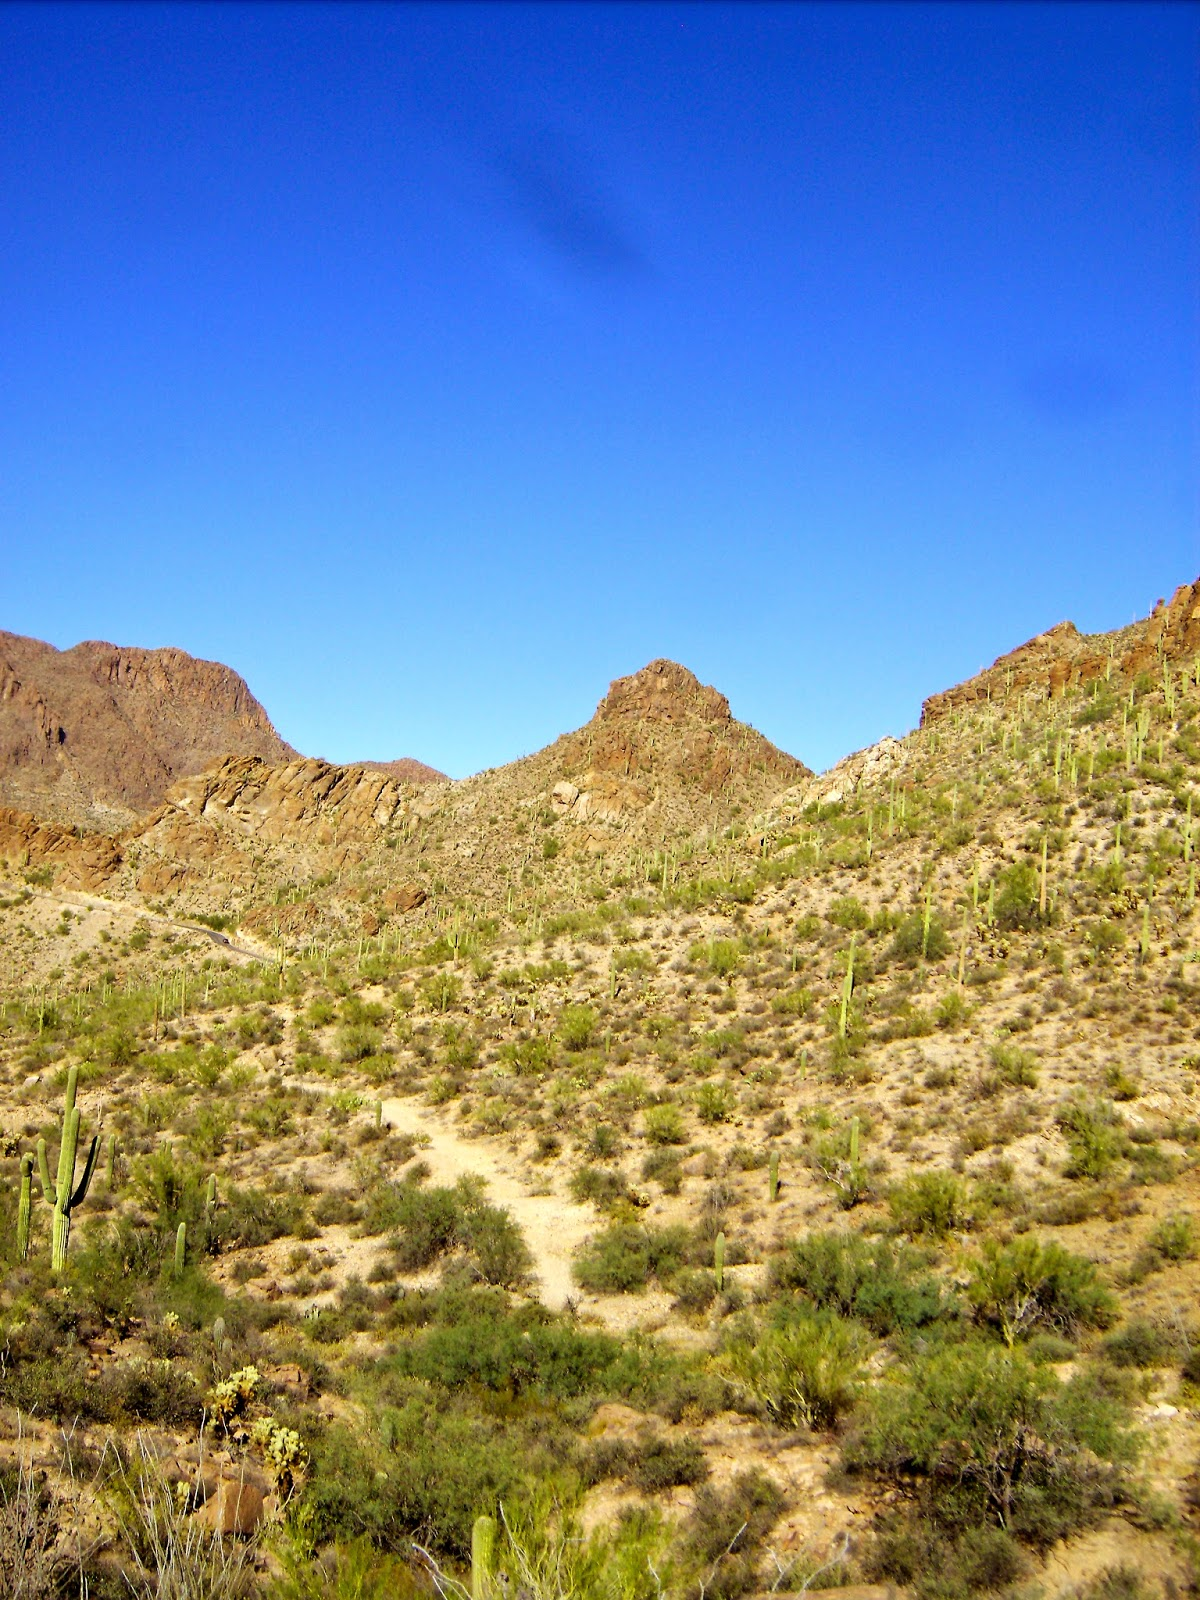 the tucson mountains in tucson mountain park